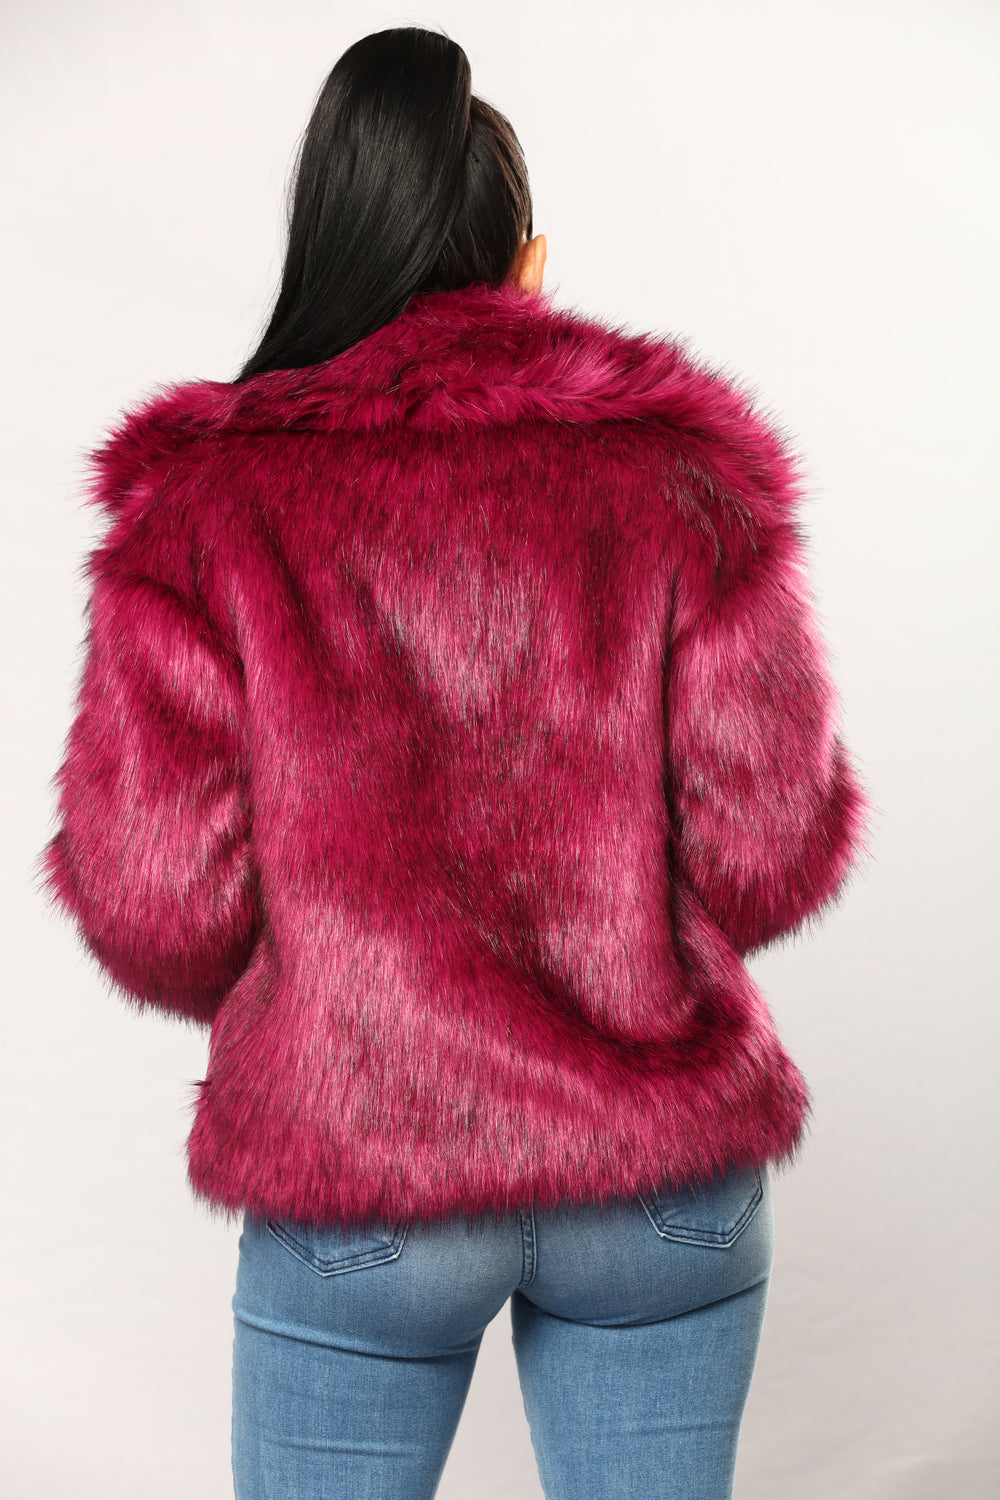 In My Own World Faux Fur Jacket - Purple Pink